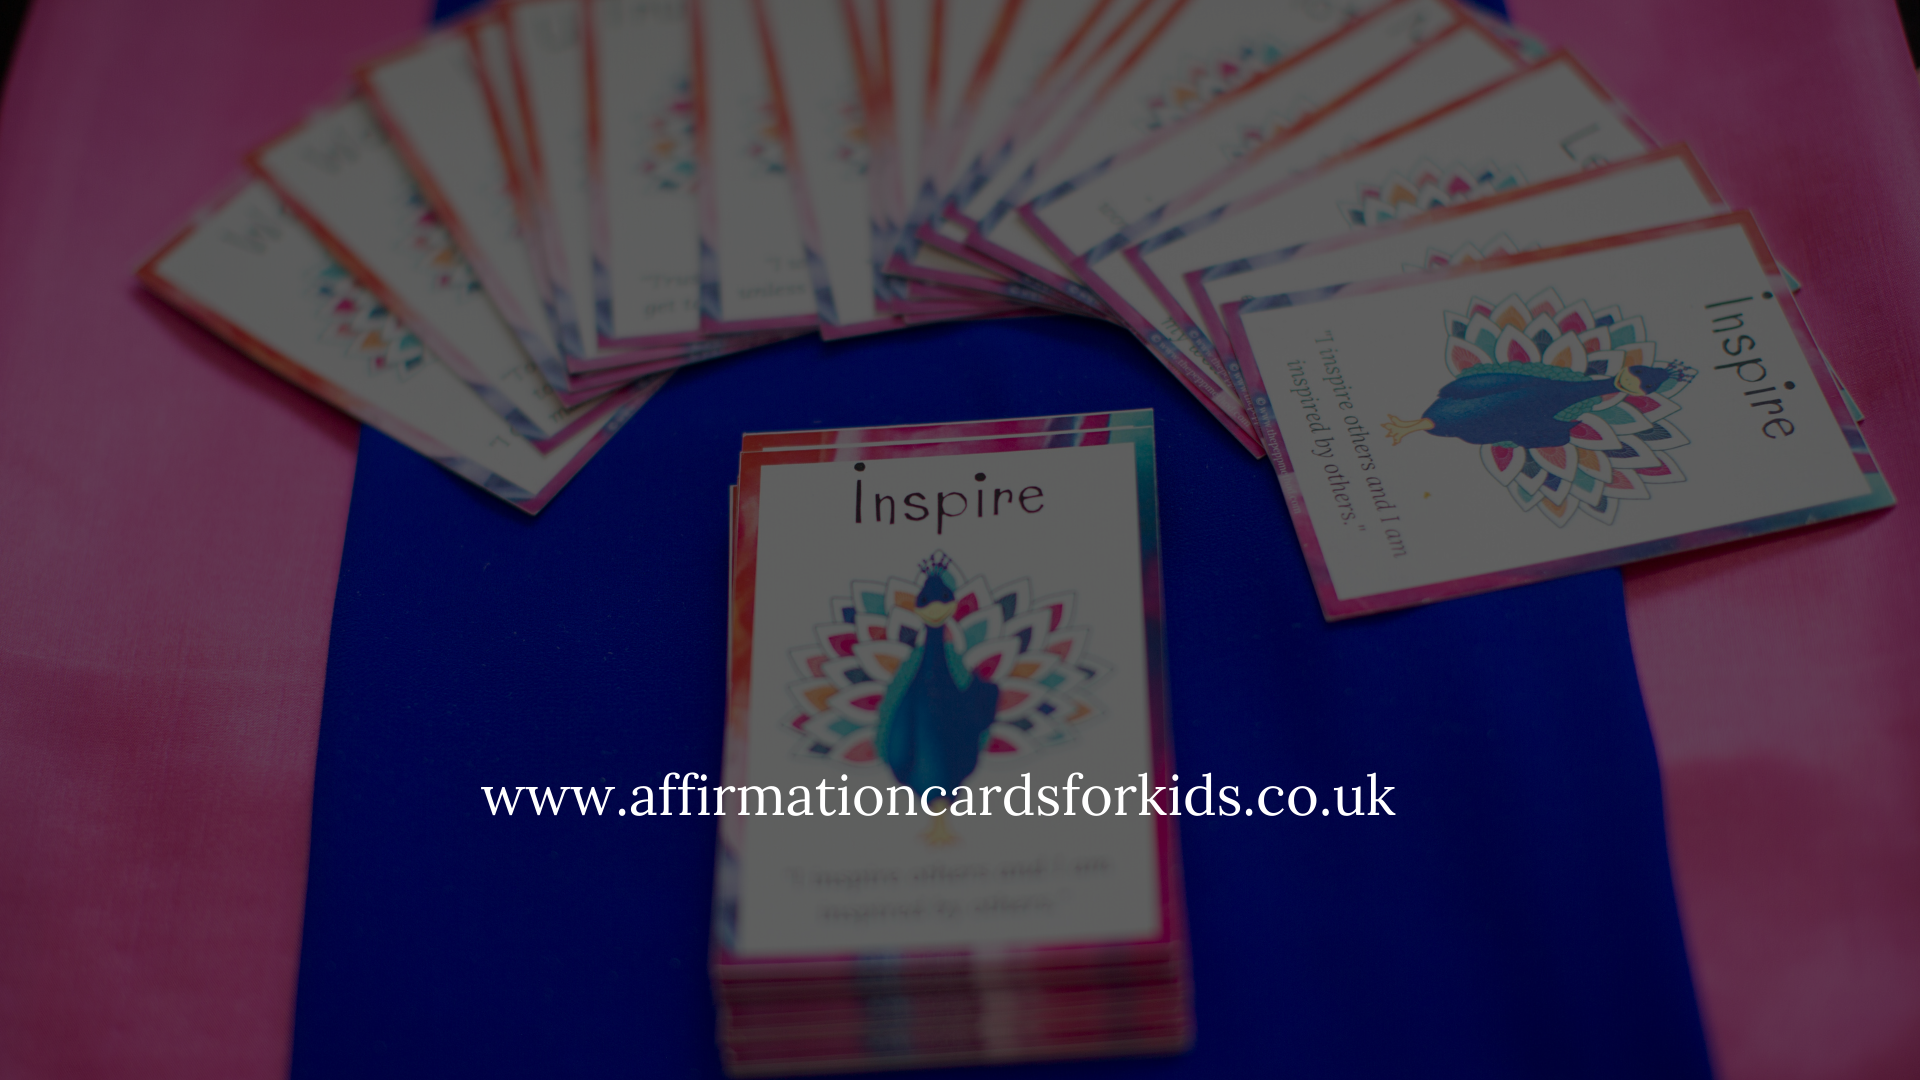 Affirmation Cards For Kids - Jennifer Barnfield - The PEPP Method